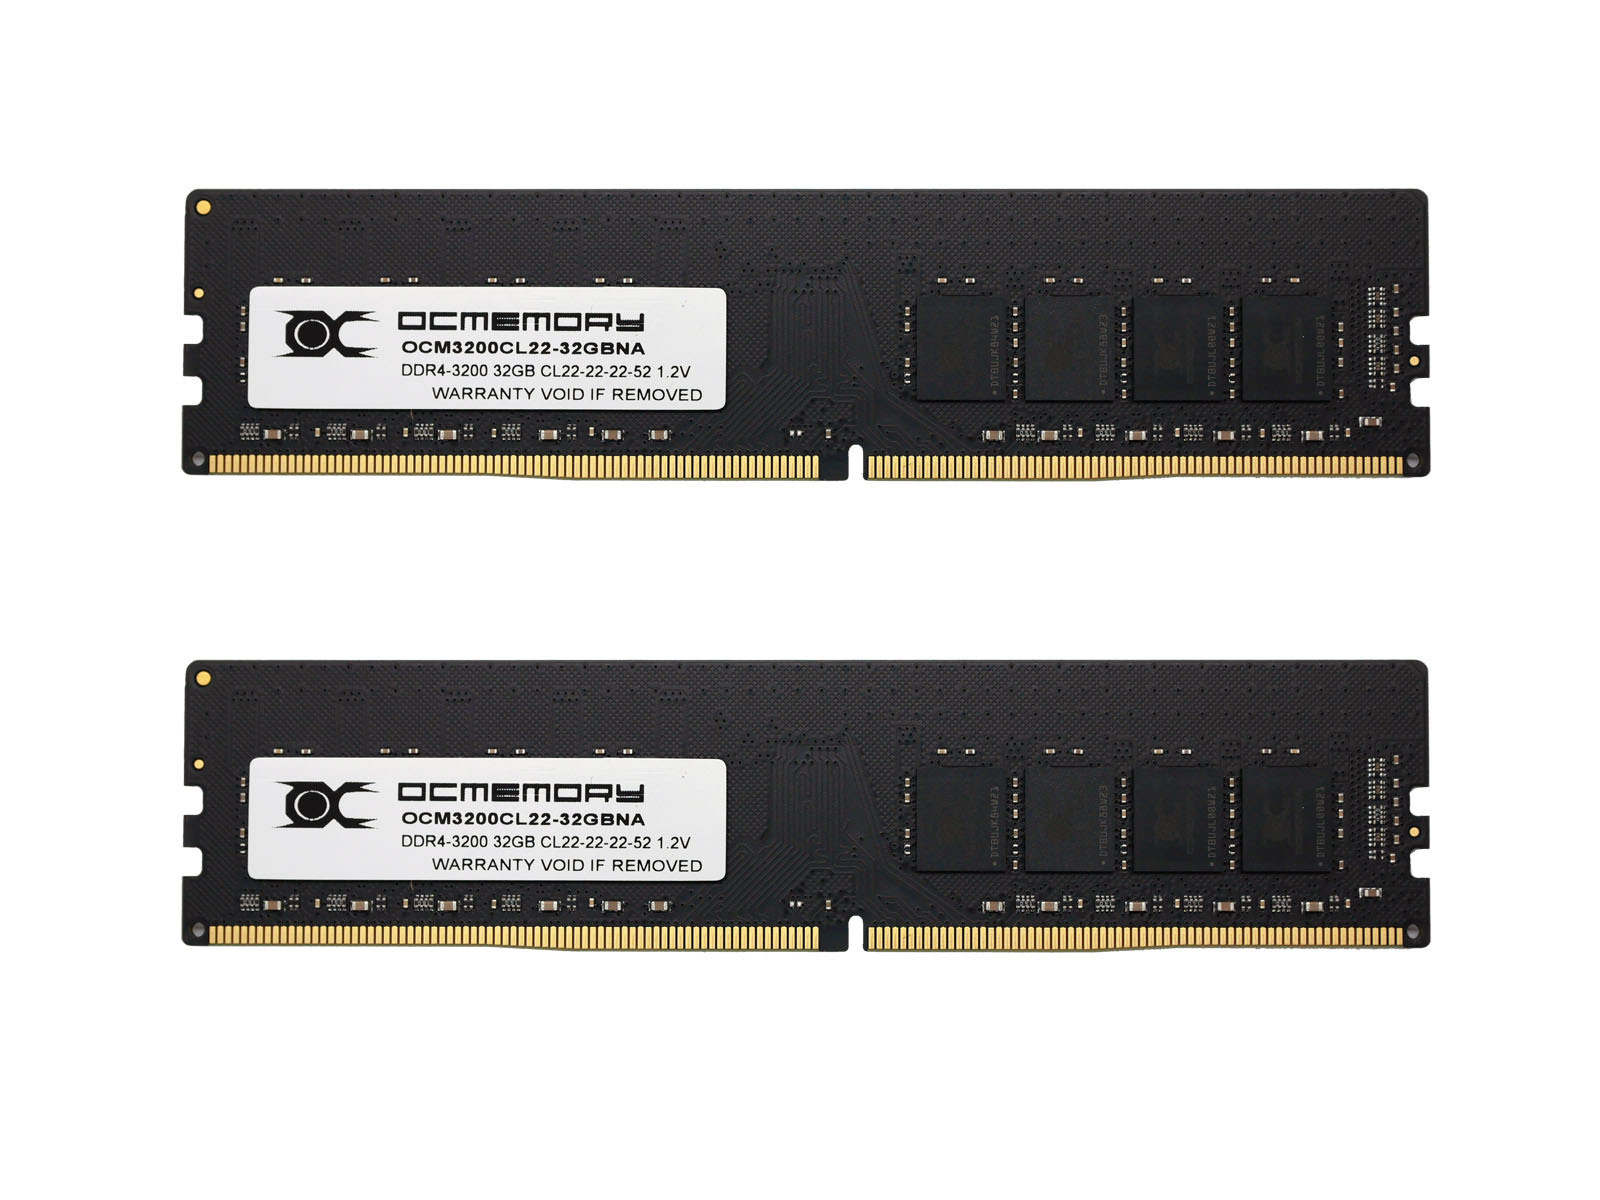 OCM3200CL22D-64GBNA (DDR4-3200 CL22 32GB×2)